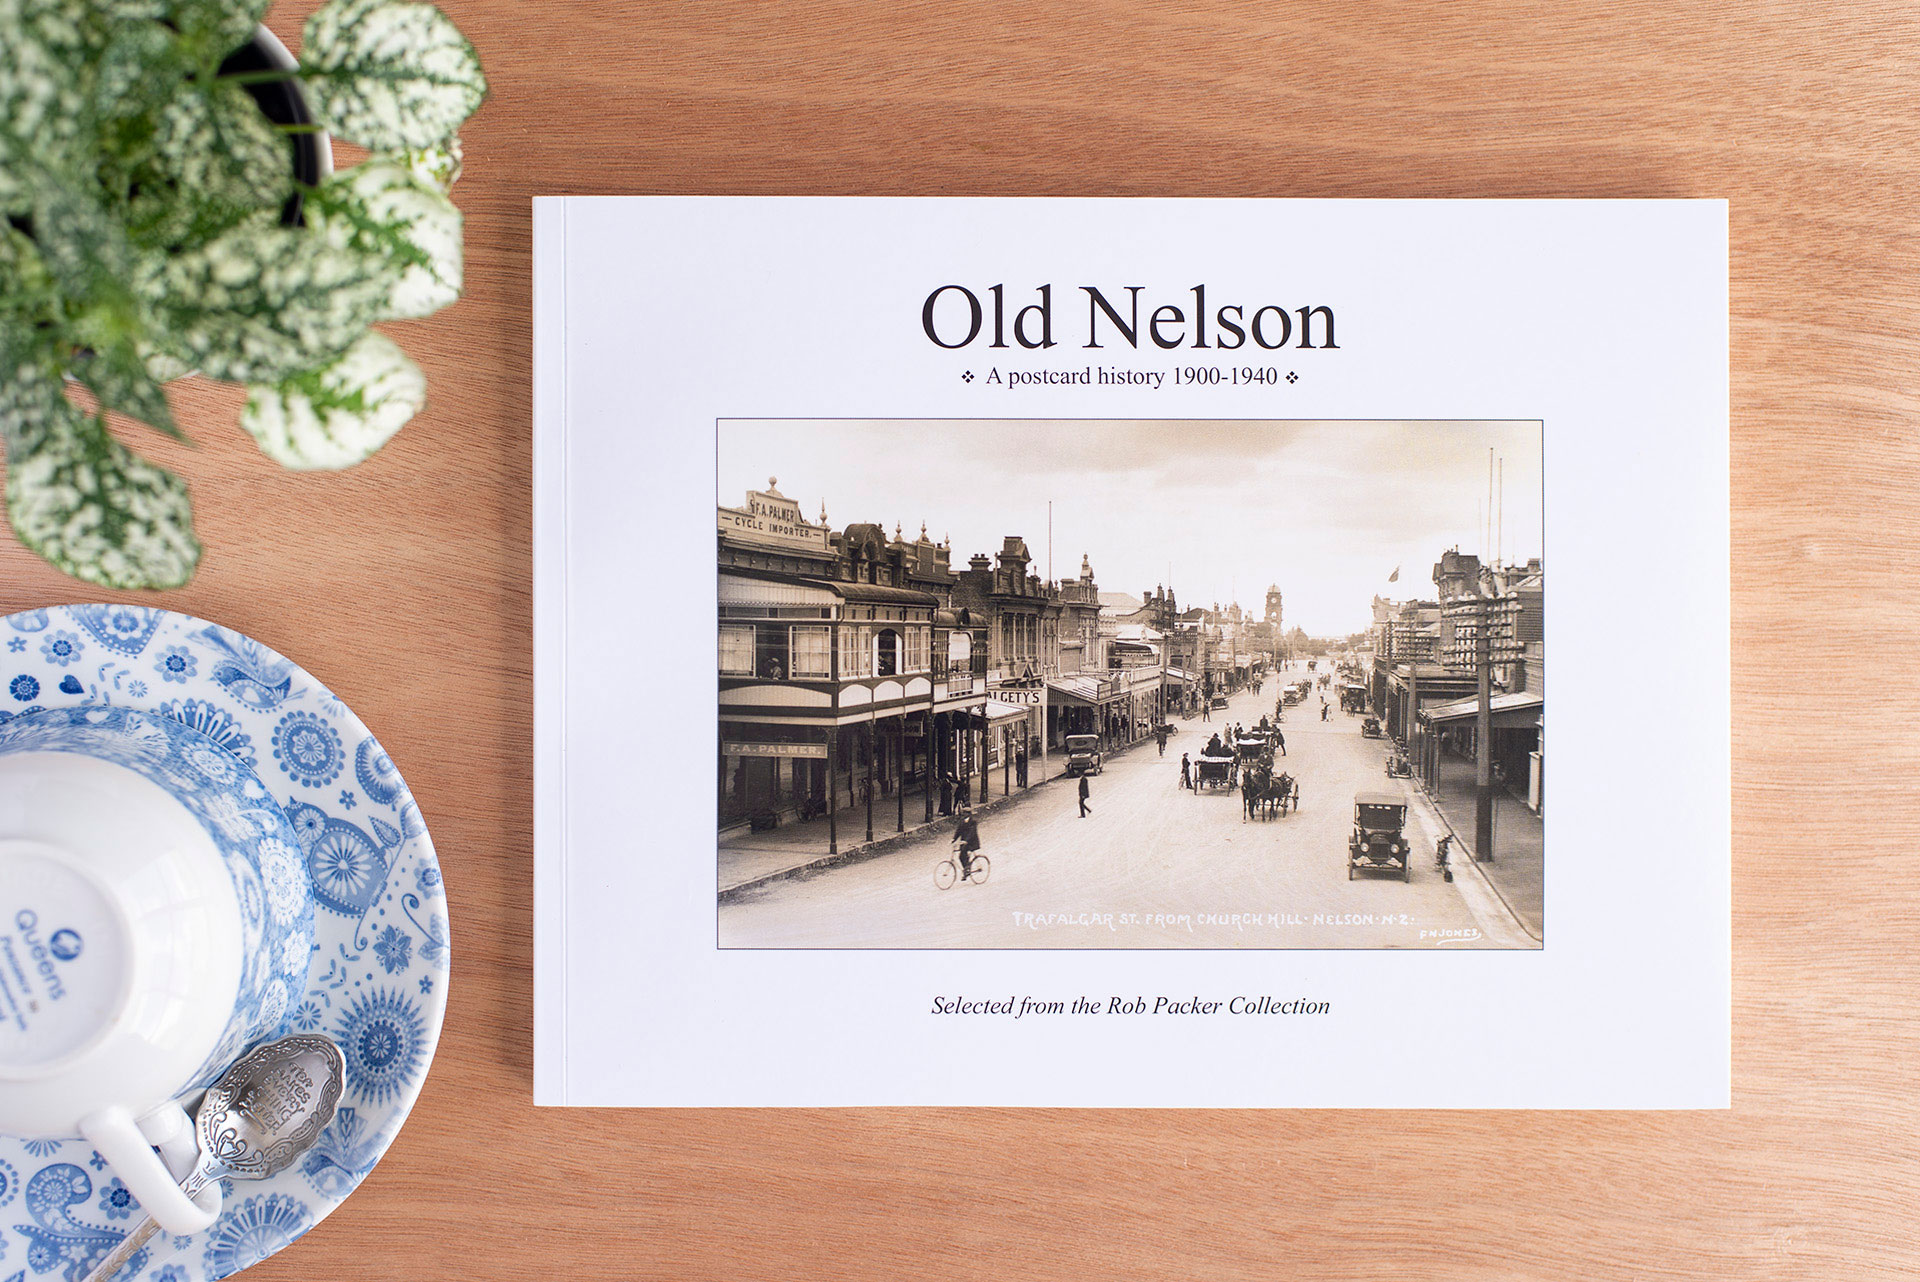 Old Nelson, A postcard history 1900-1940 book cover by Barney Brewster, Rob Packer and Nikau Press, photo taken by Nana Jones